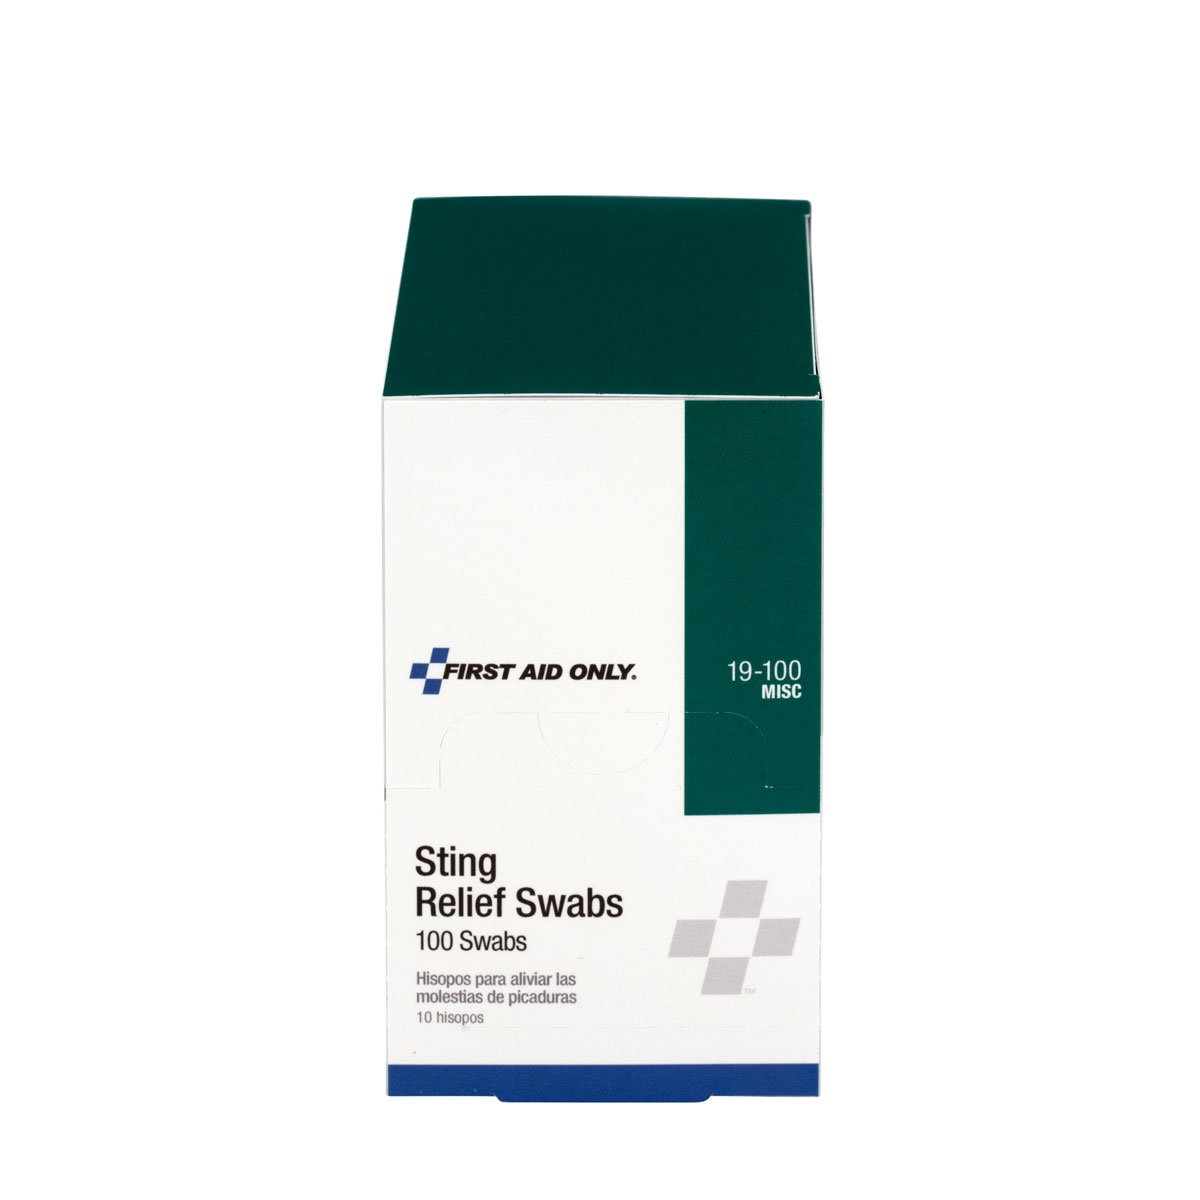 Pac-Kit by First Aid Only 19-100 0.018 fl oz Anesthetic/Antiseptic Sting Relief Swab (Box of 100)